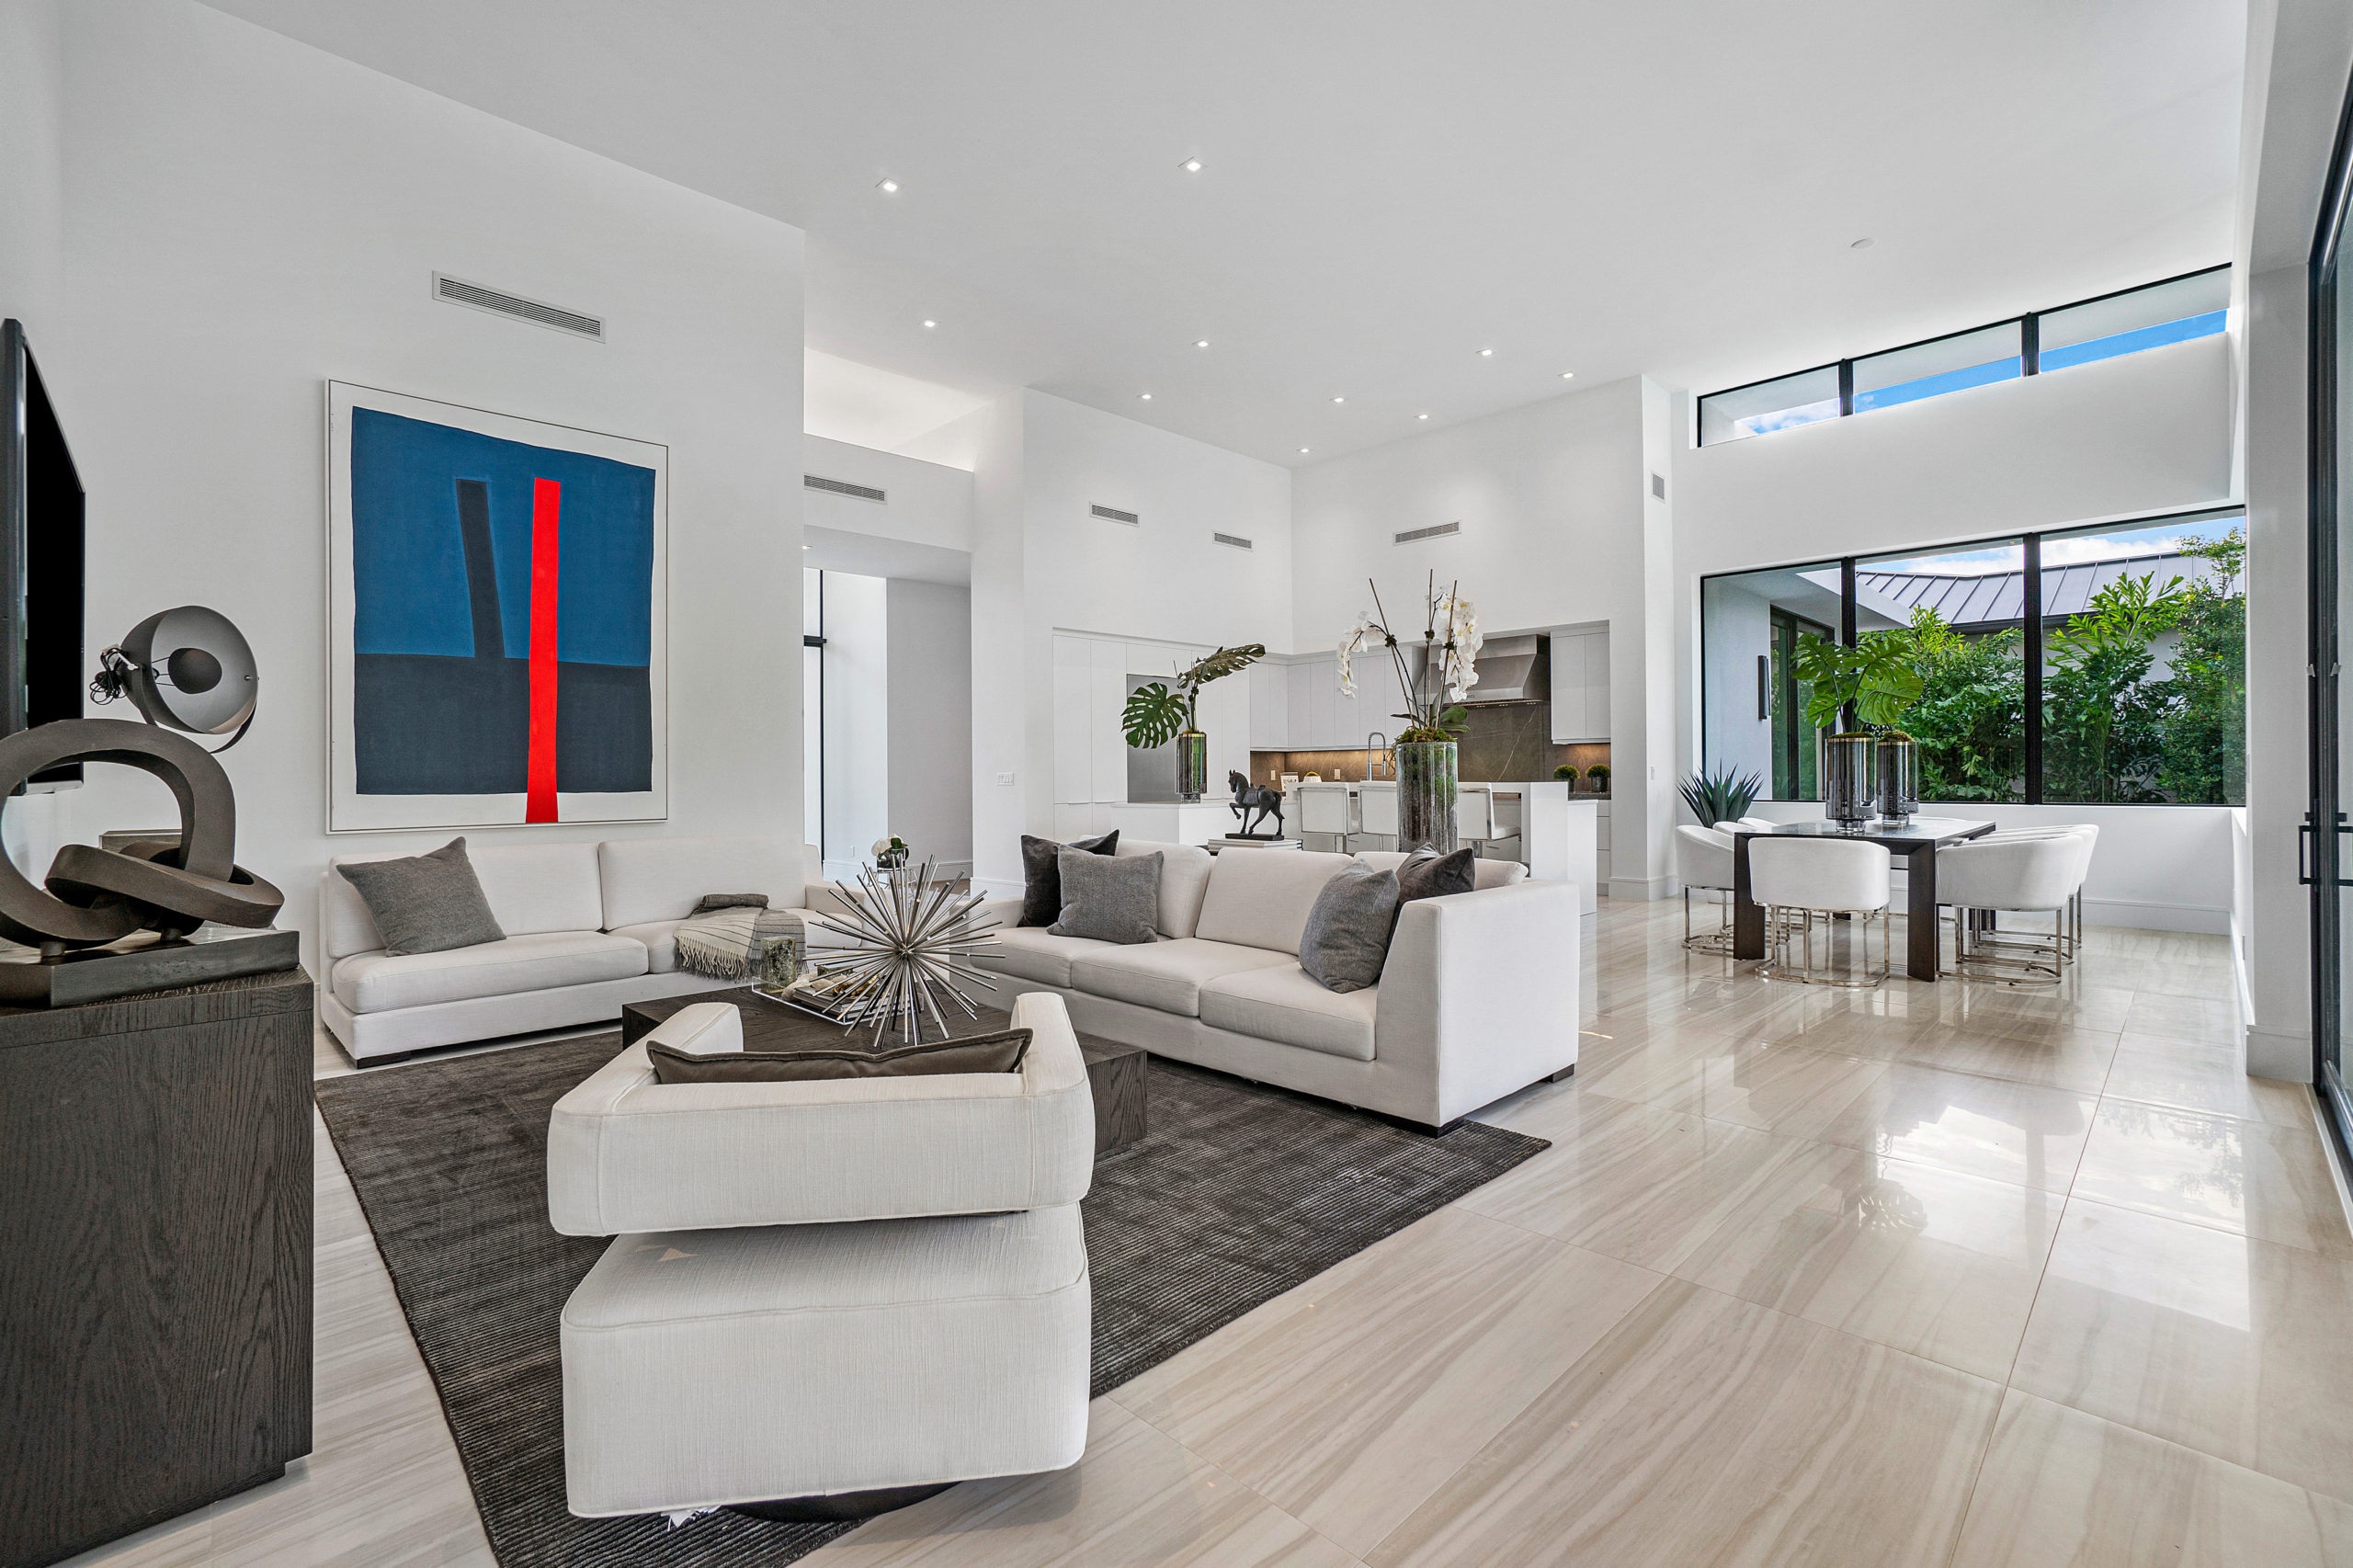 OPEN FLOOR PLAN OR TRADITIONAL HOME LAYOUT?